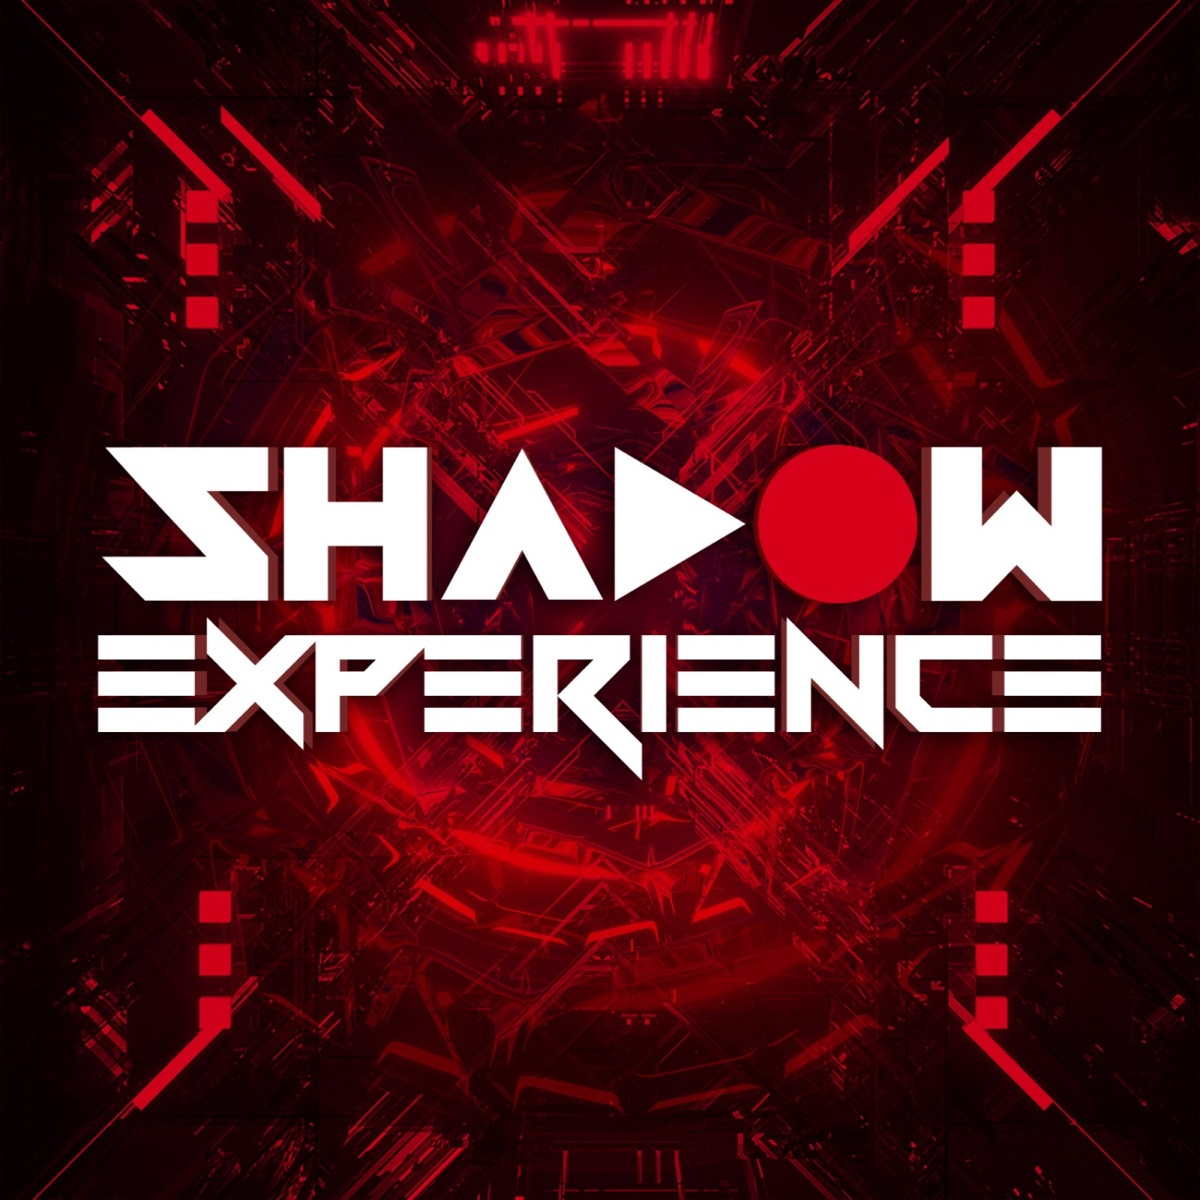 The Shadow Experience